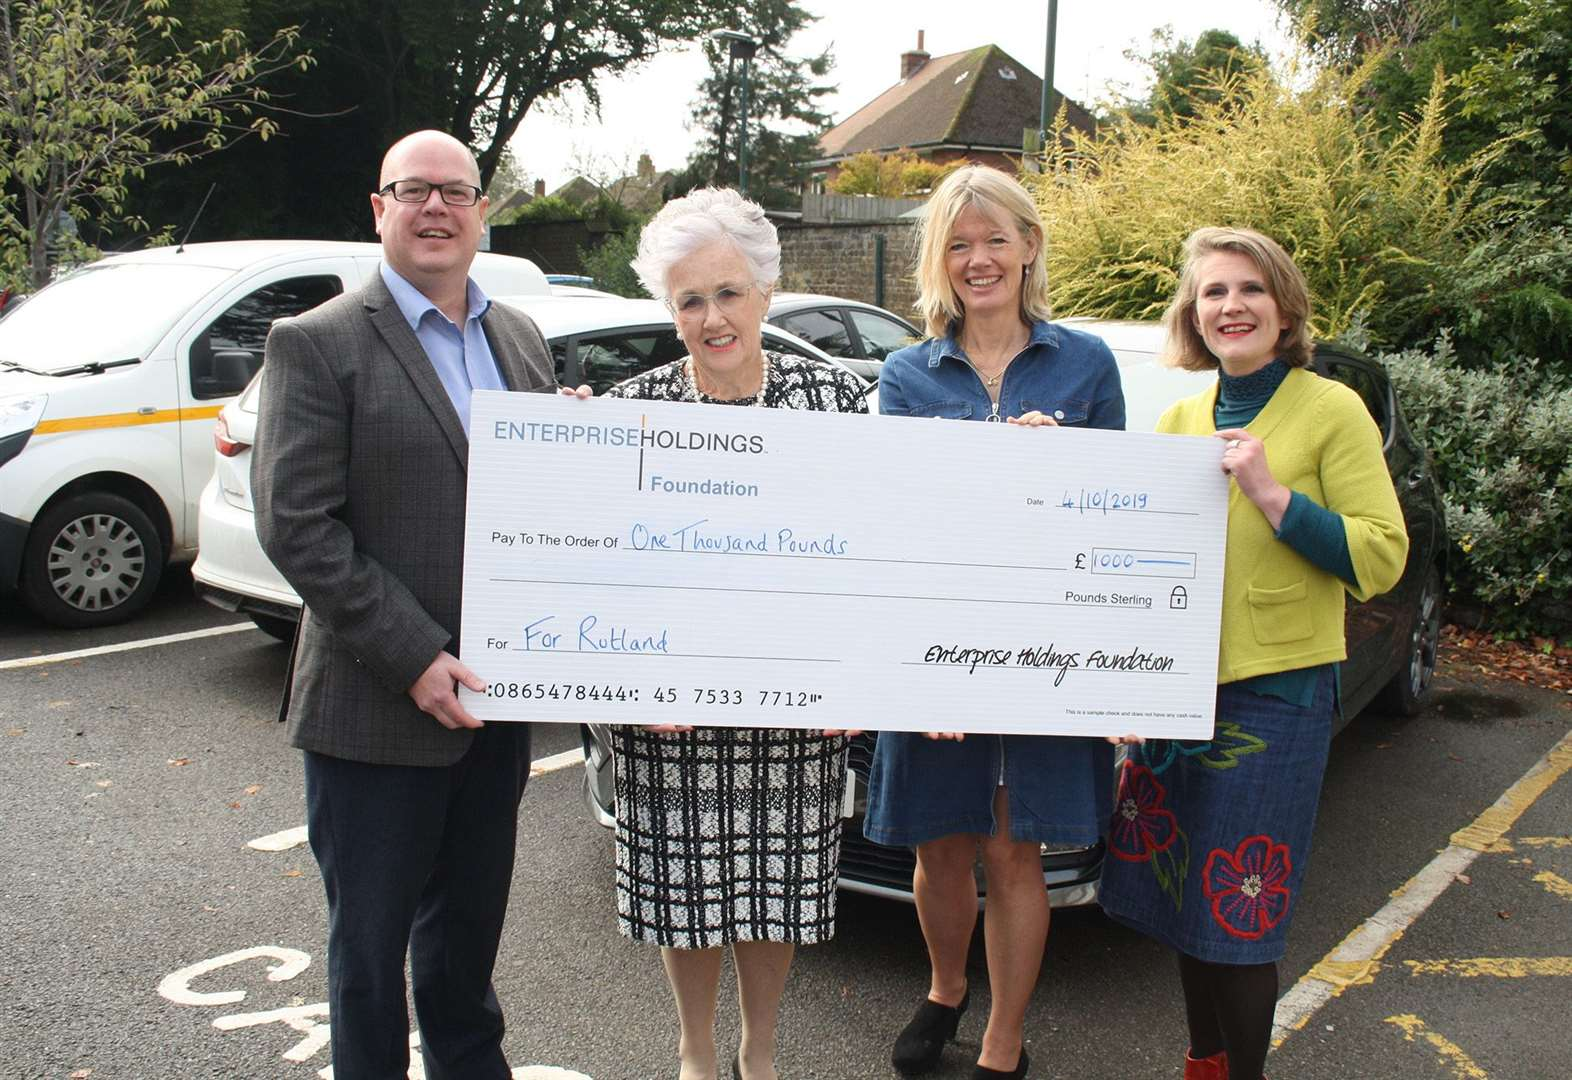 Car rental firm gives advice charity a boost